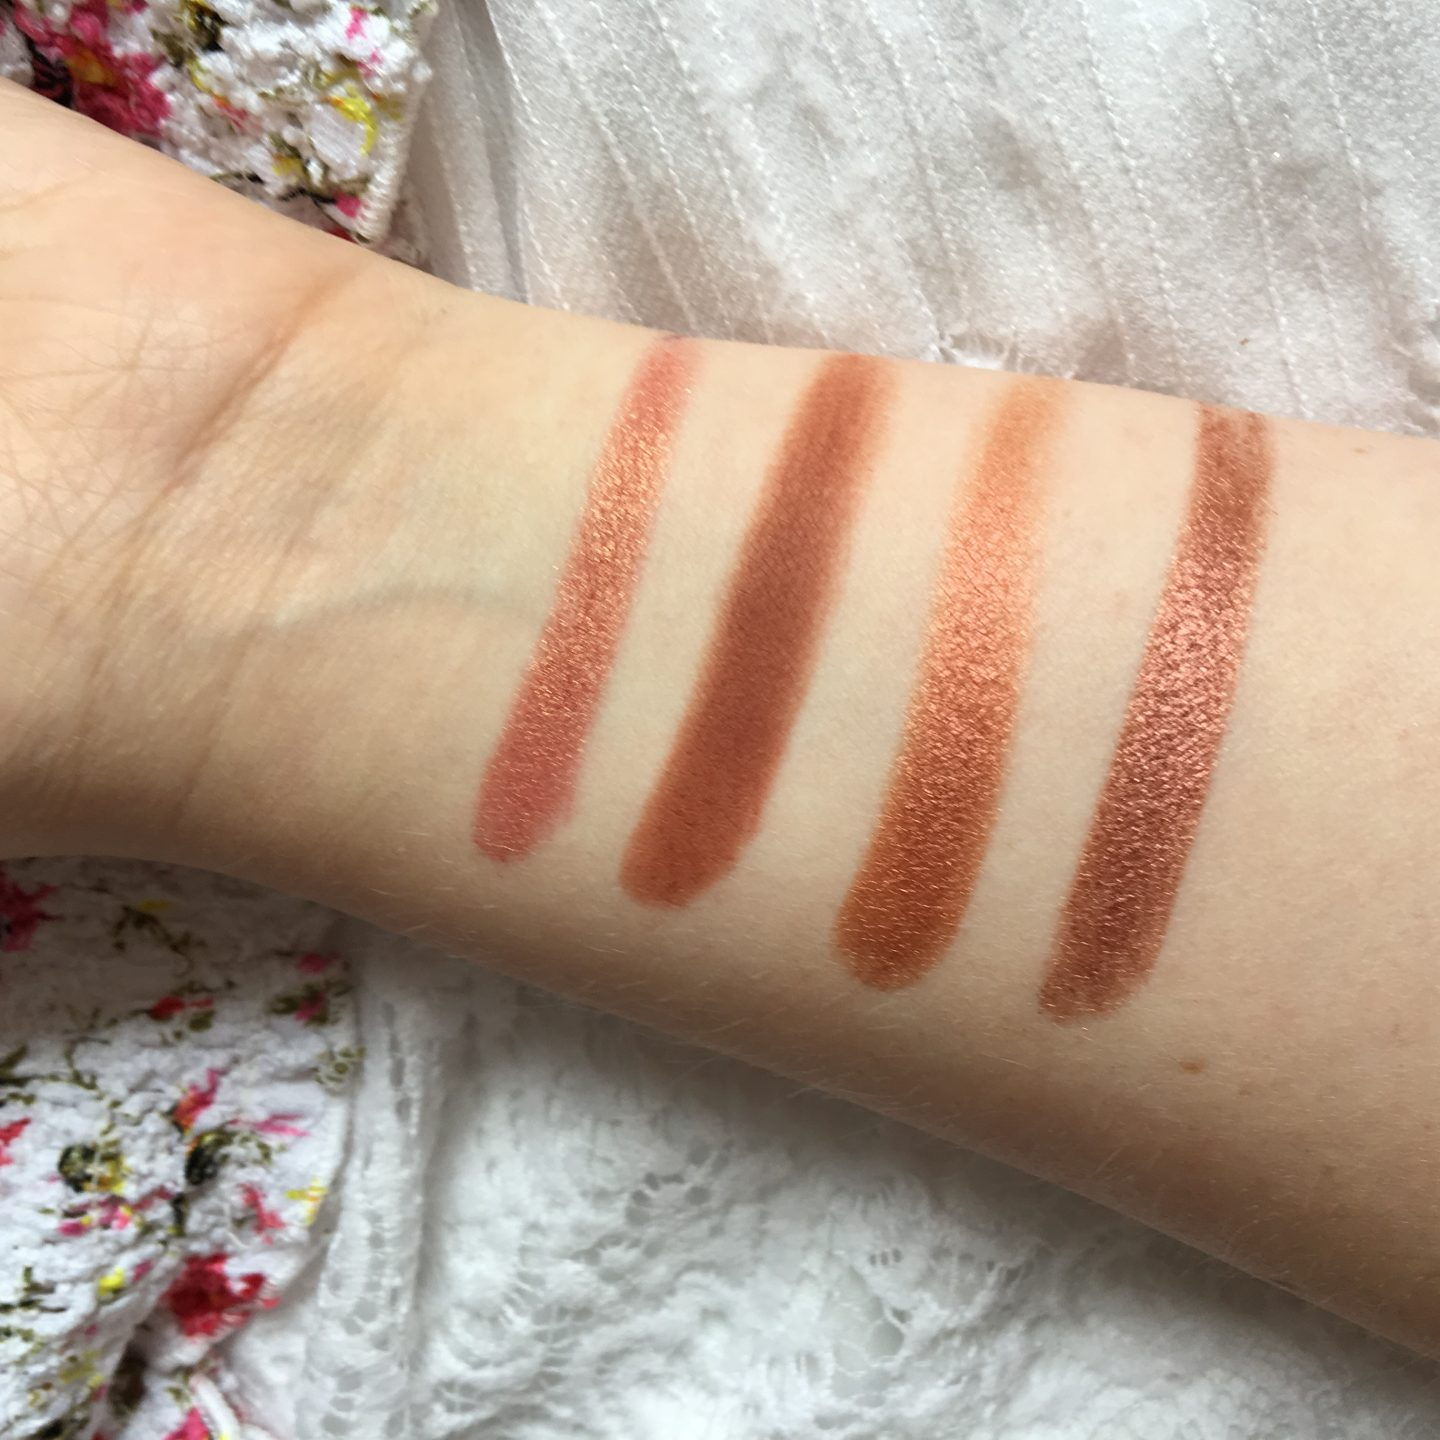 Urban Decay Naked Heat Review! | Row 2 Swatches